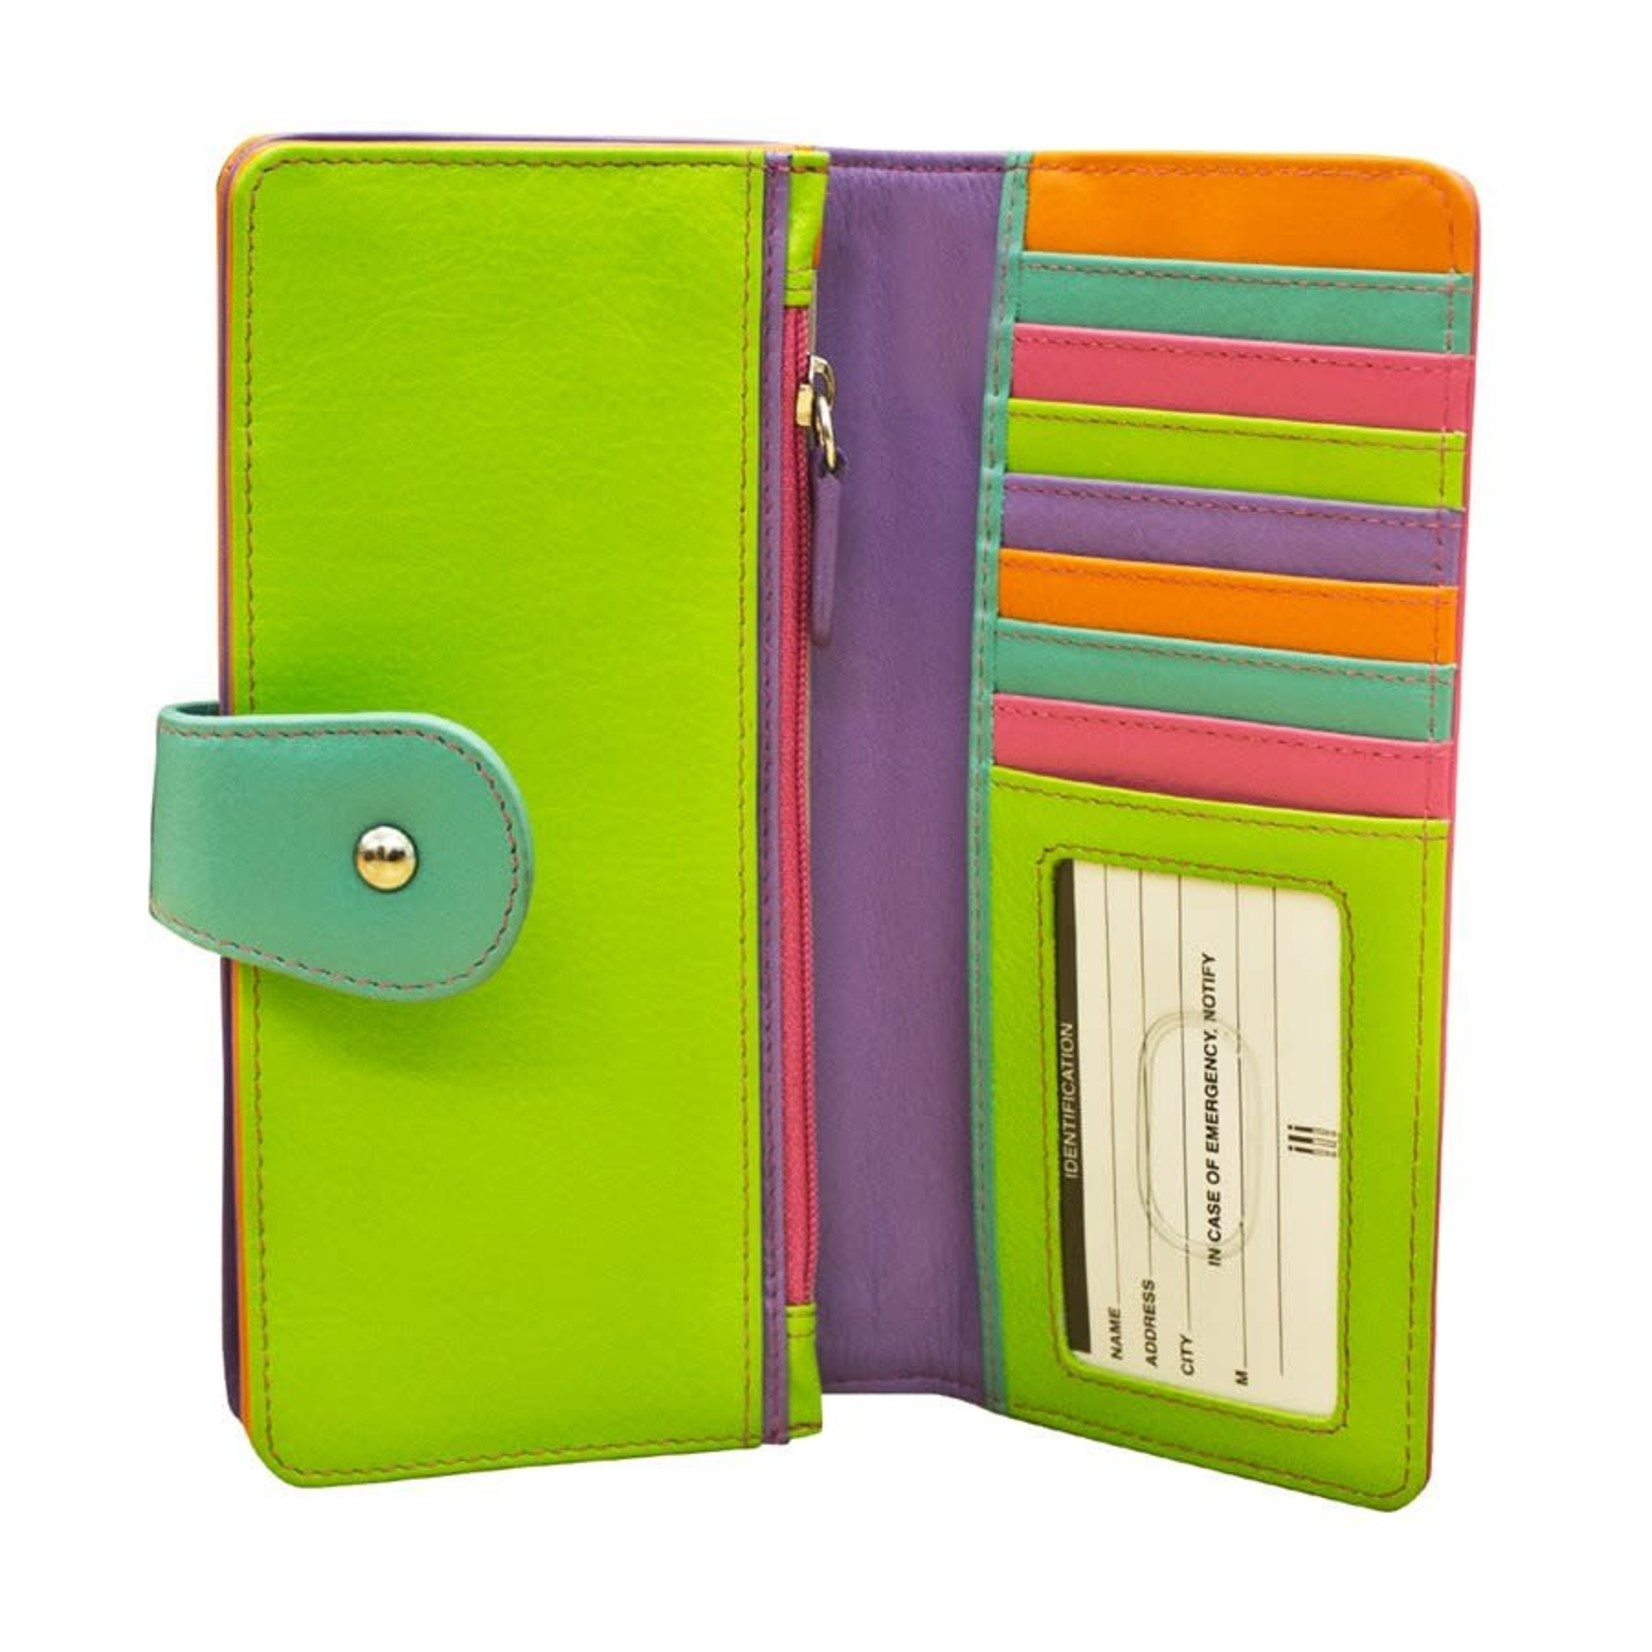 Leather Handbags and Accessories 7875 Palm Beach - Wallet w/Tab Closure